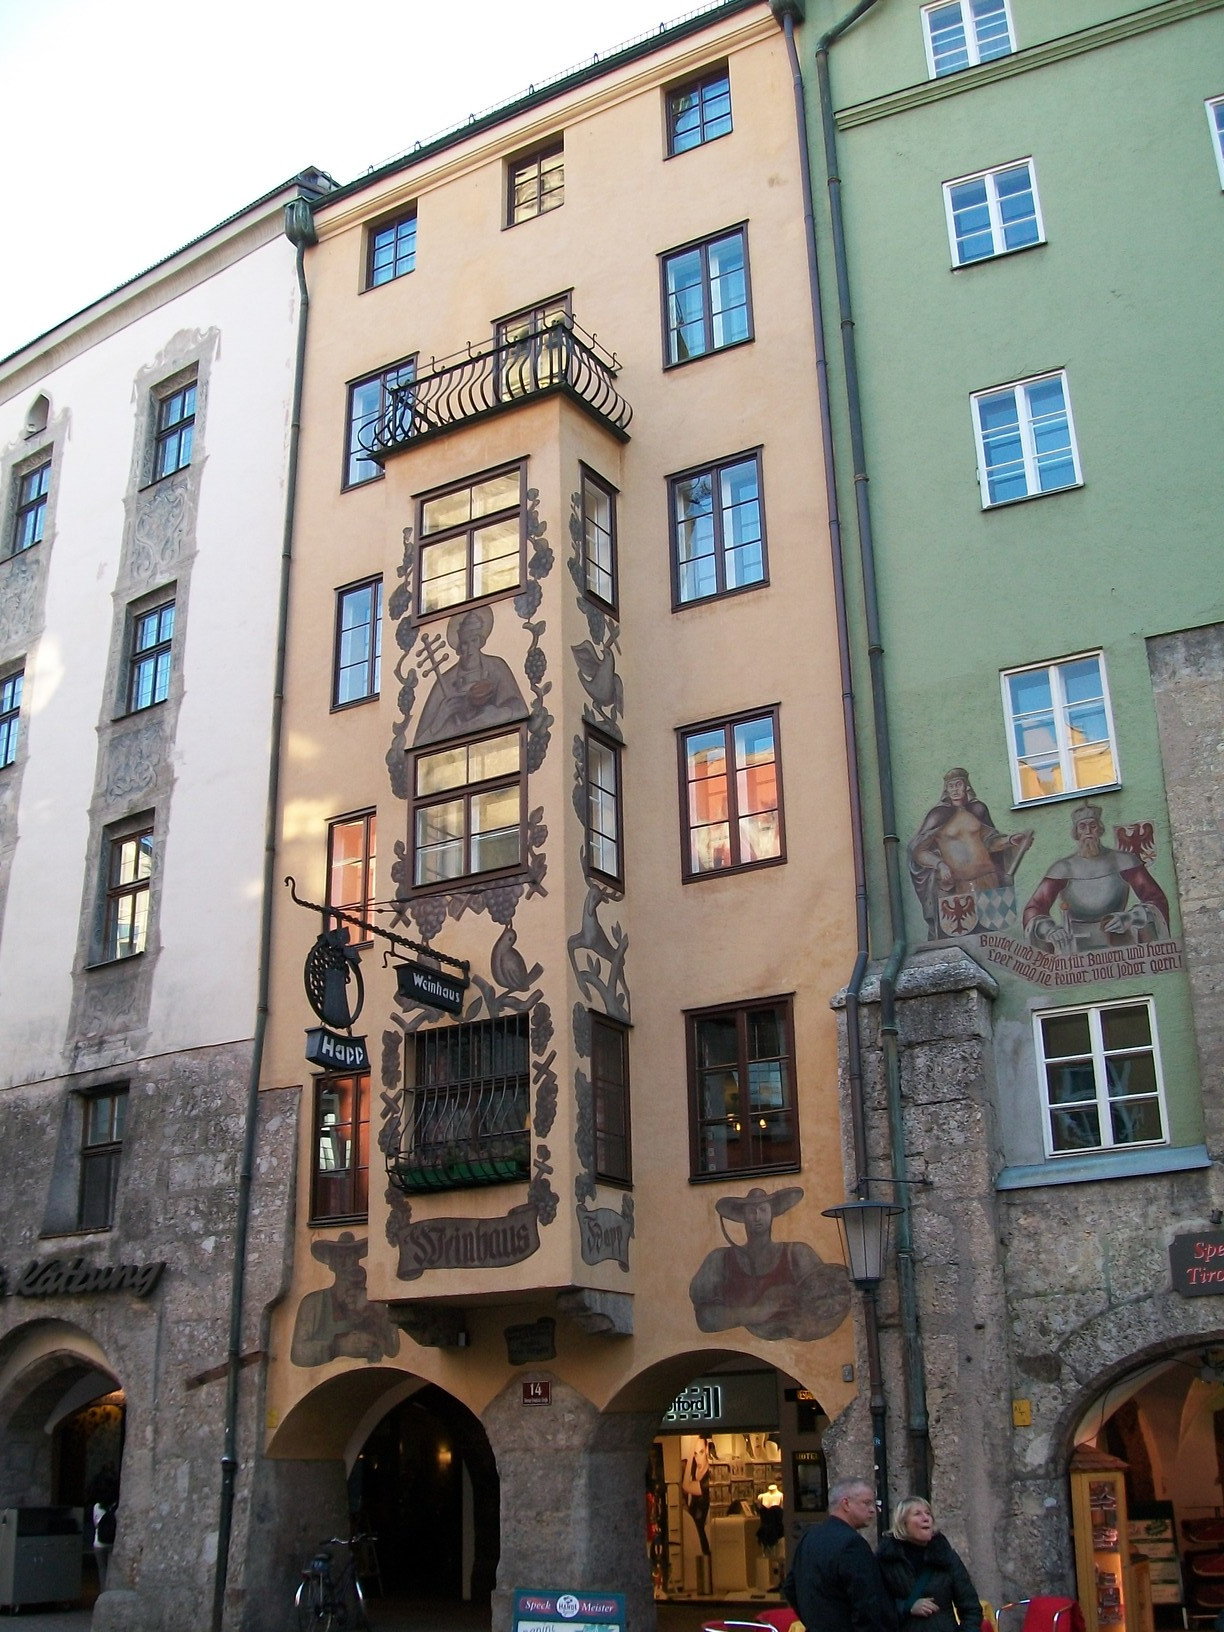 The walls of this building in Altstad are decorated with religious paintings.